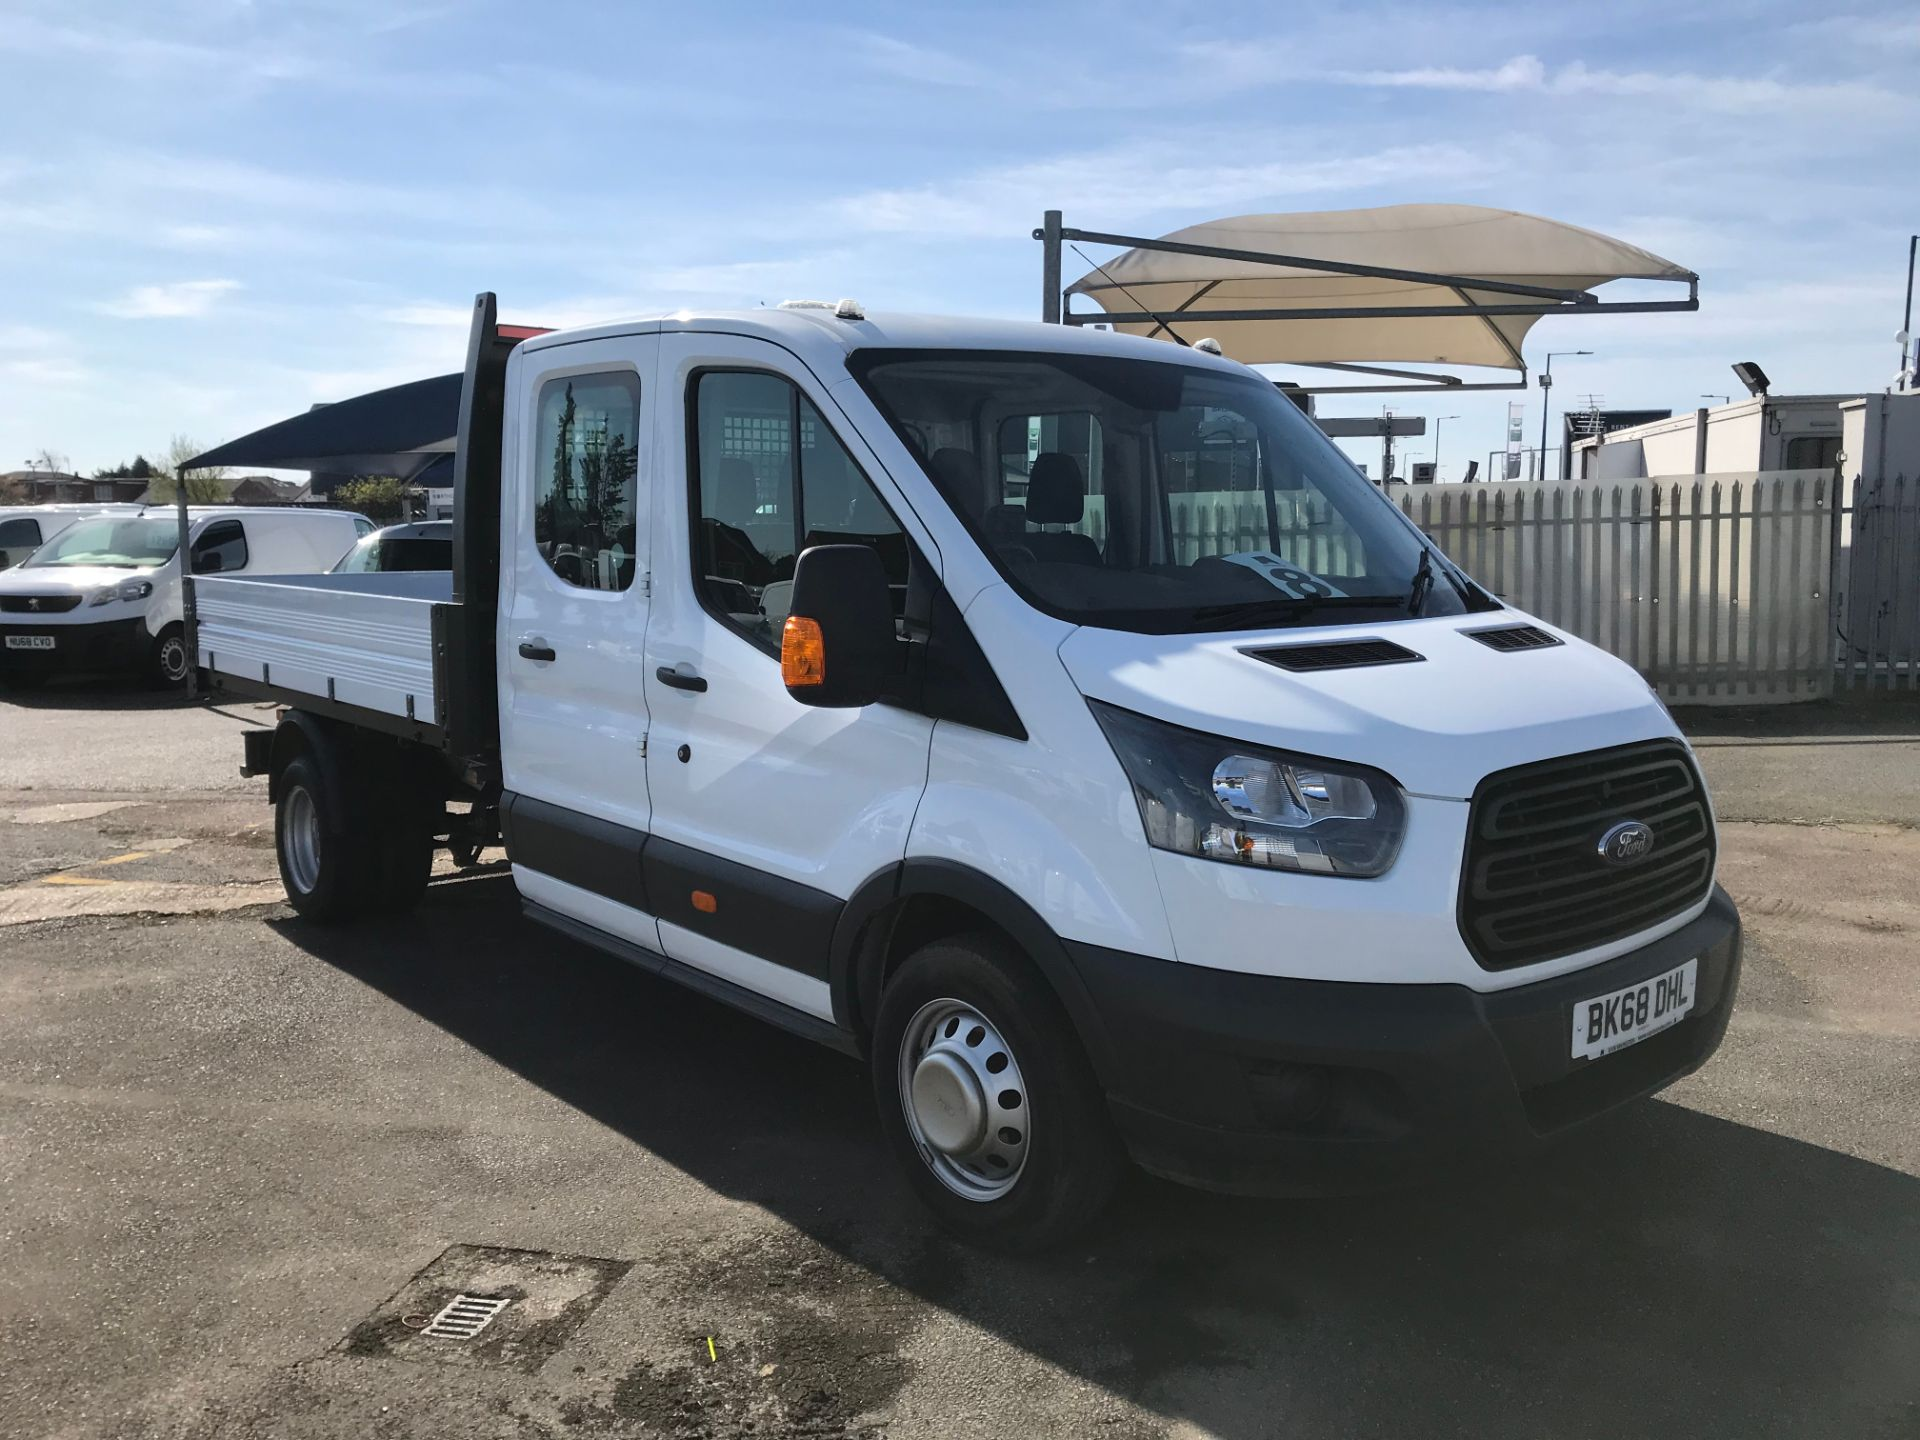 2018 Ford Transit 2.0 Tdci 130Ps One Stop D/Cab Tipper [1 Way] (BK68DHL00)